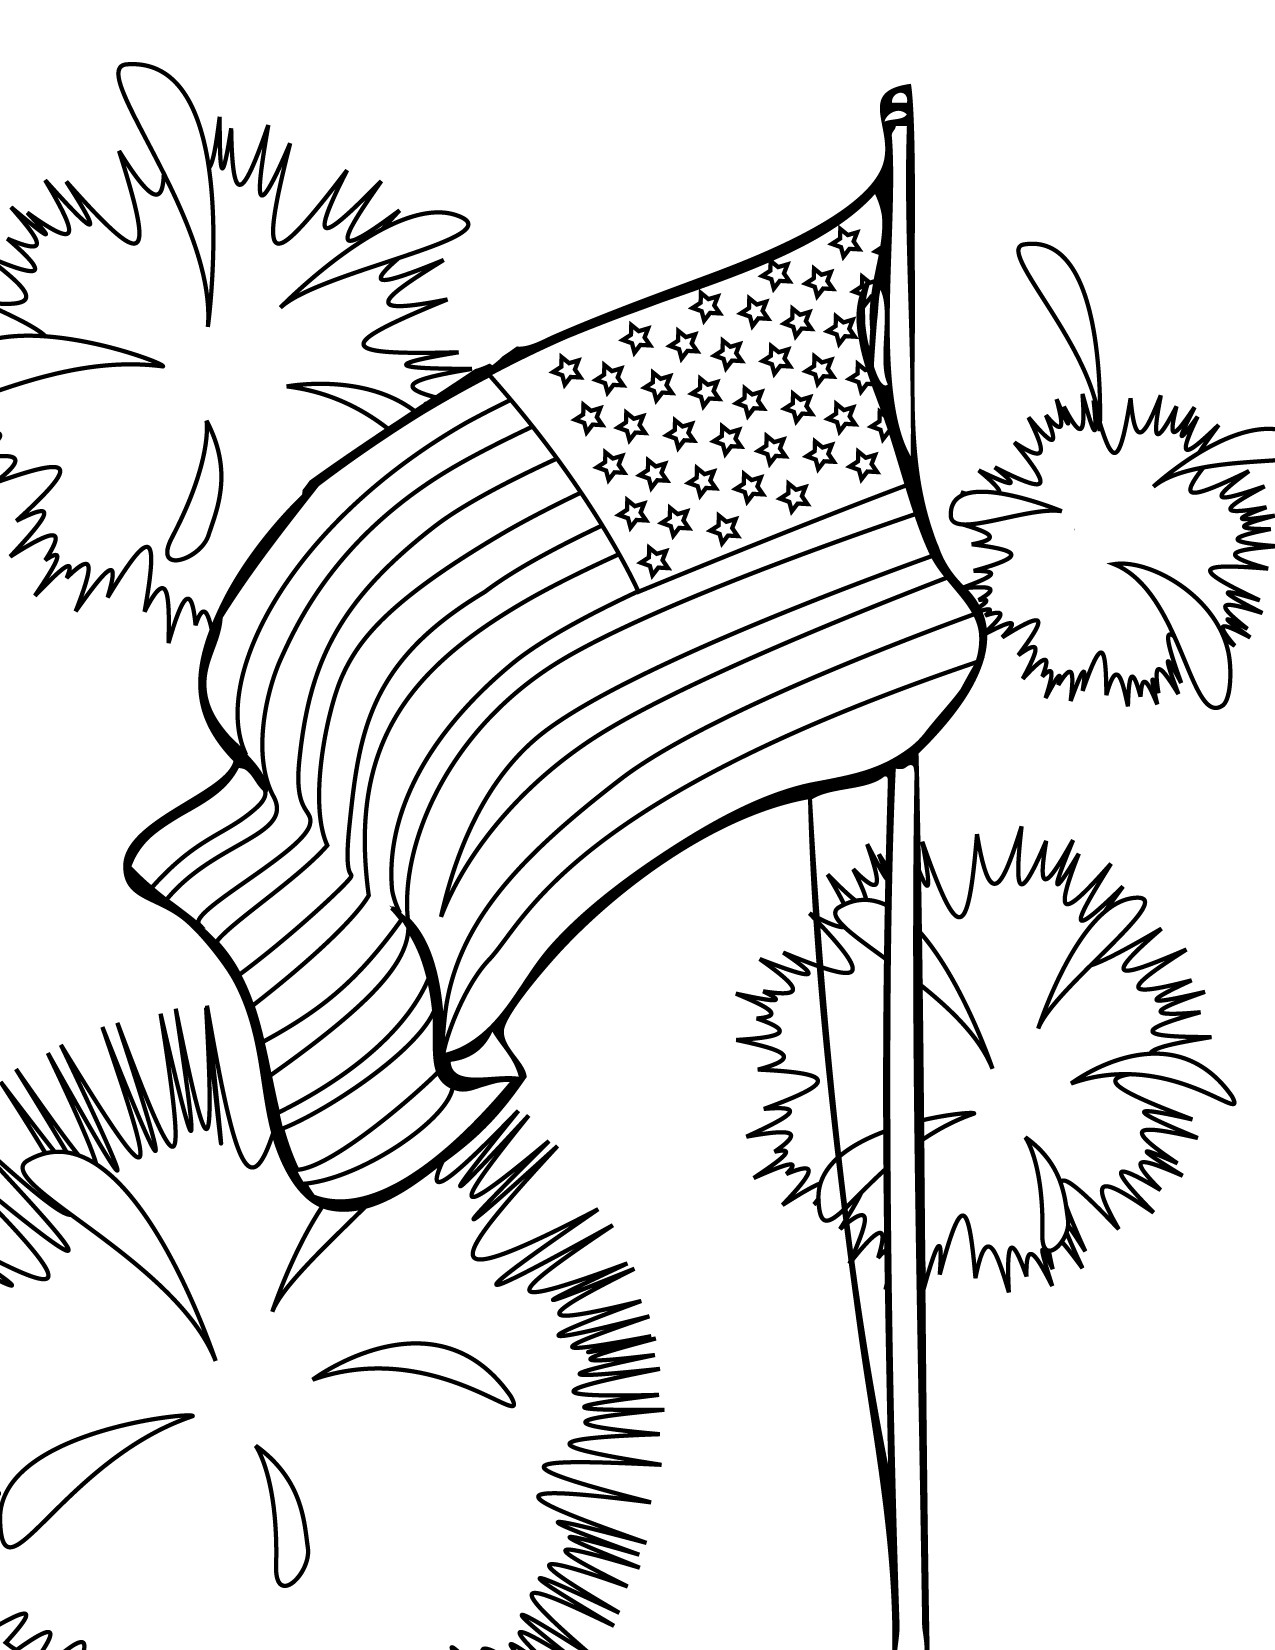 picture regarding Free Printable 4th of July Coloring Pages titled Absolutely free Printable Fourth Of July Coloring Web pages at GetDrawings